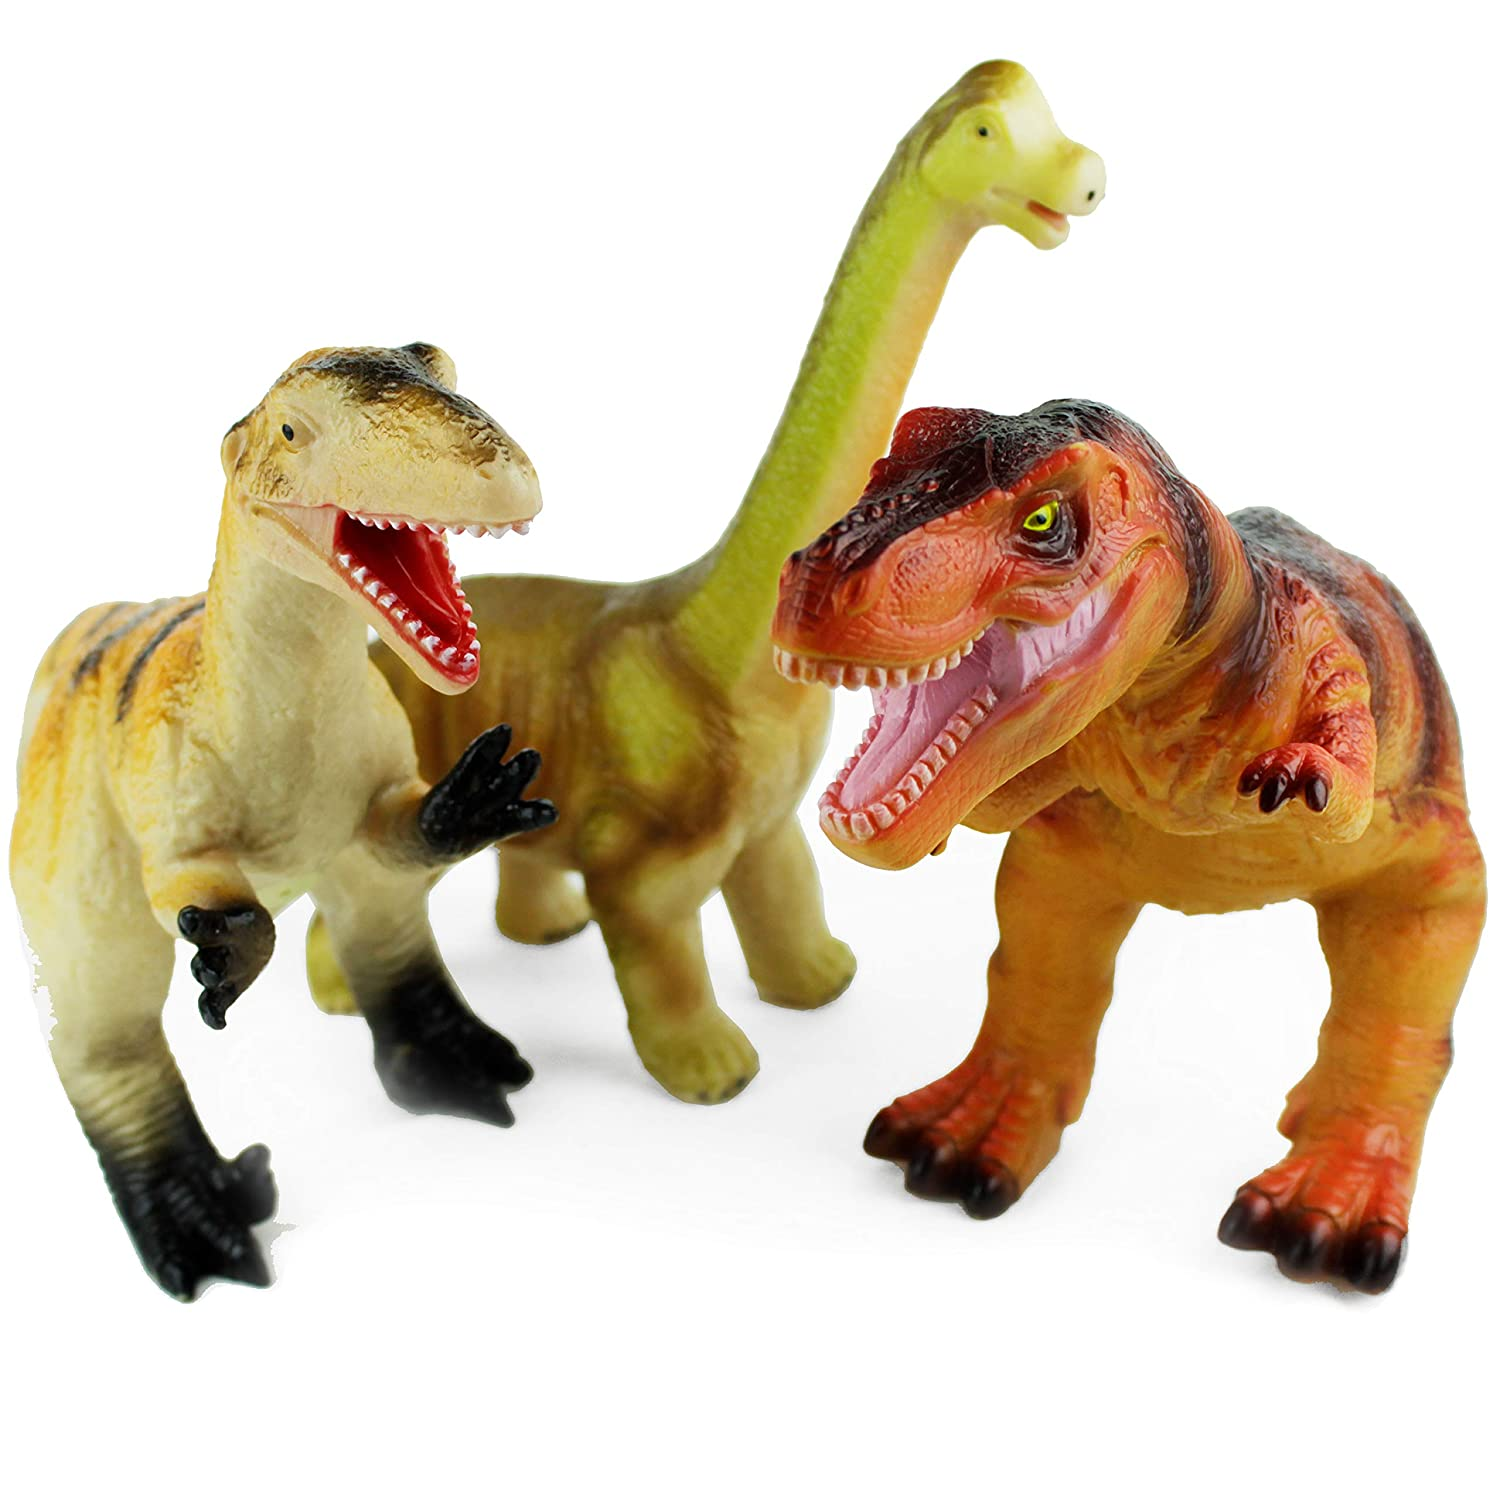 "Boley 3 Pack Monster Jumbo 12"" Dinosaur Set - Great for Young Kids, Children, Toddlers - Dinosaur Toy Playset Great As Kids Dinosaurs Toys, Dinosaur Party Favors, and Dinosaur Party Supplies!"